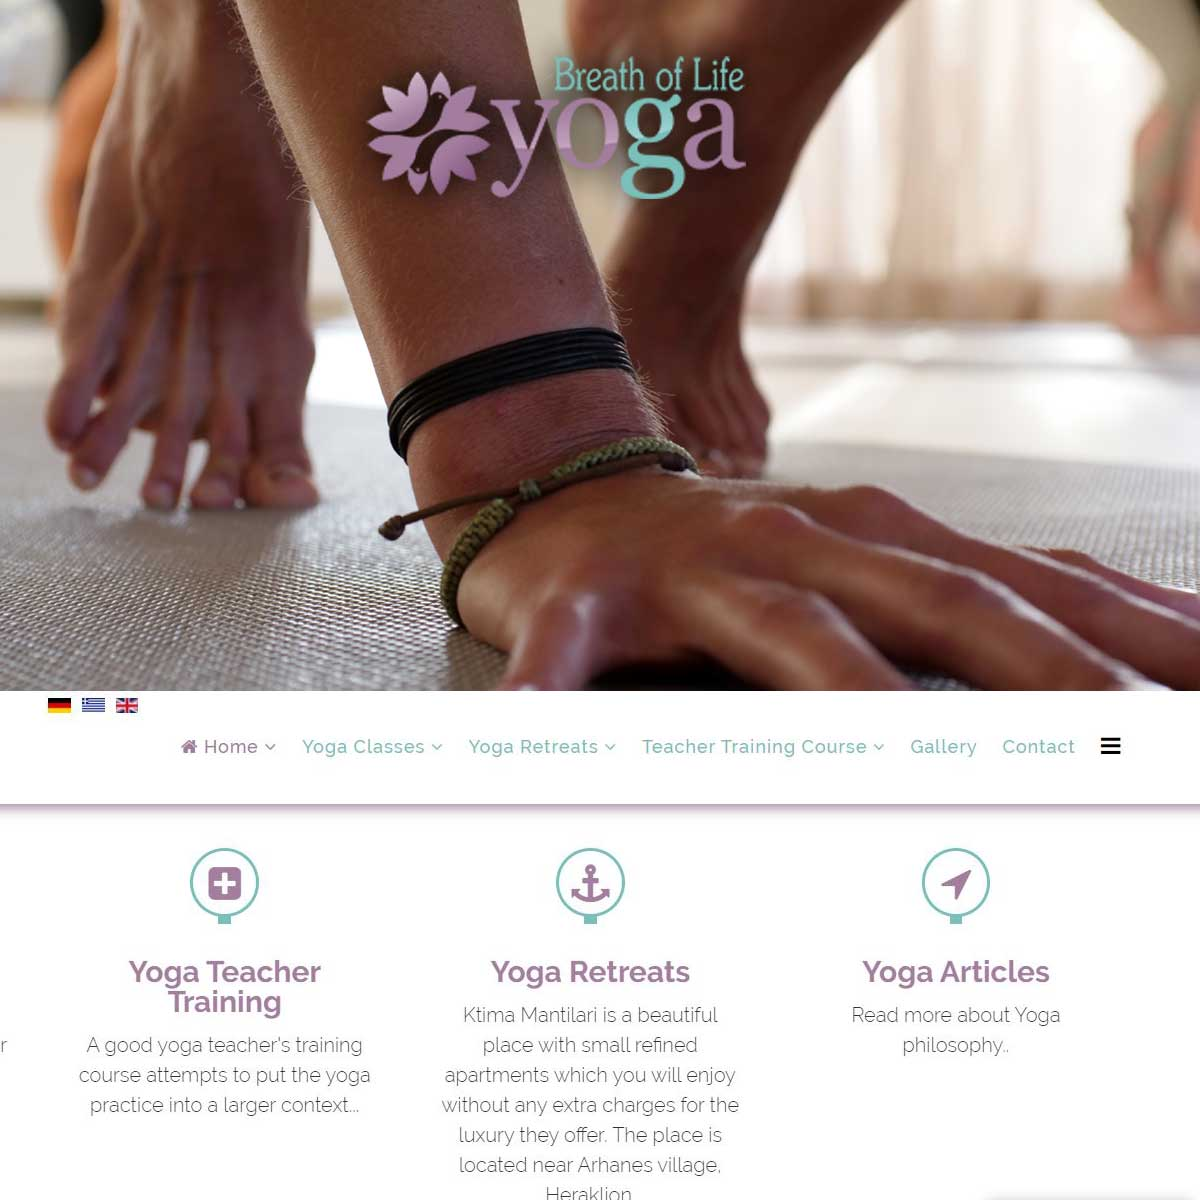 yoga-breathoflife.com